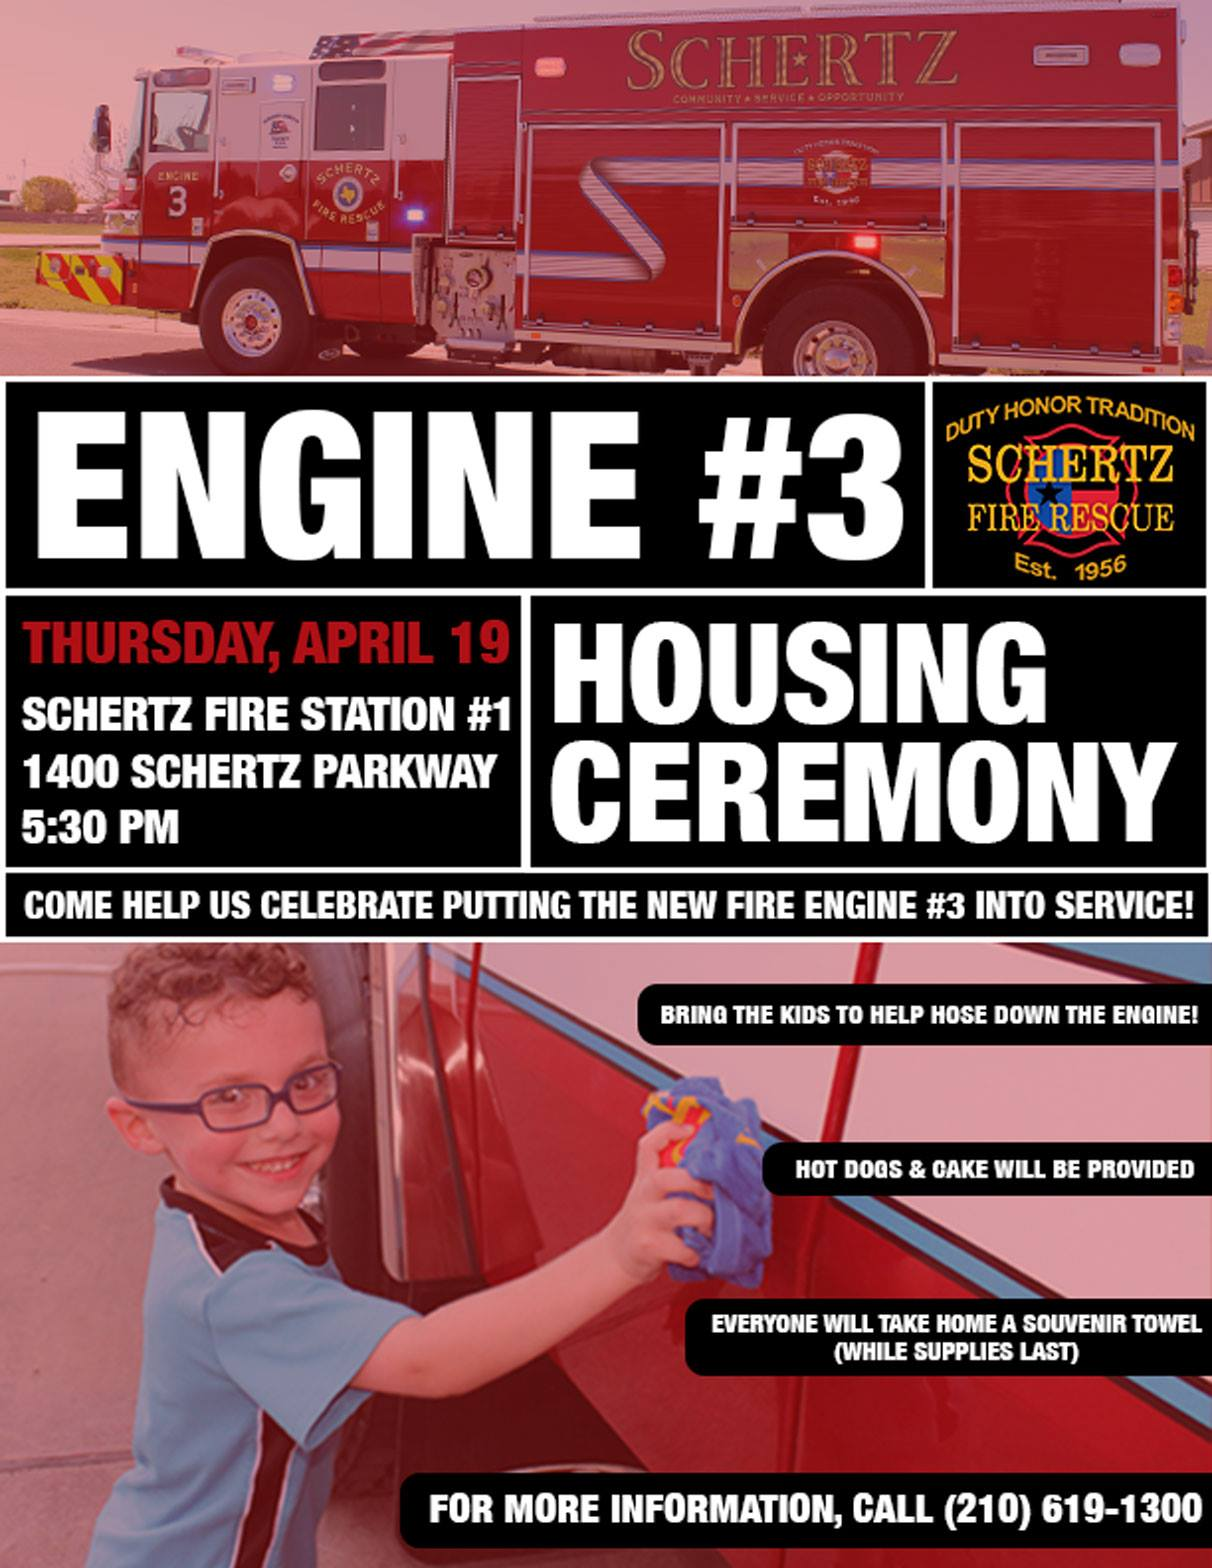 Engine #3 Housing Ceremony